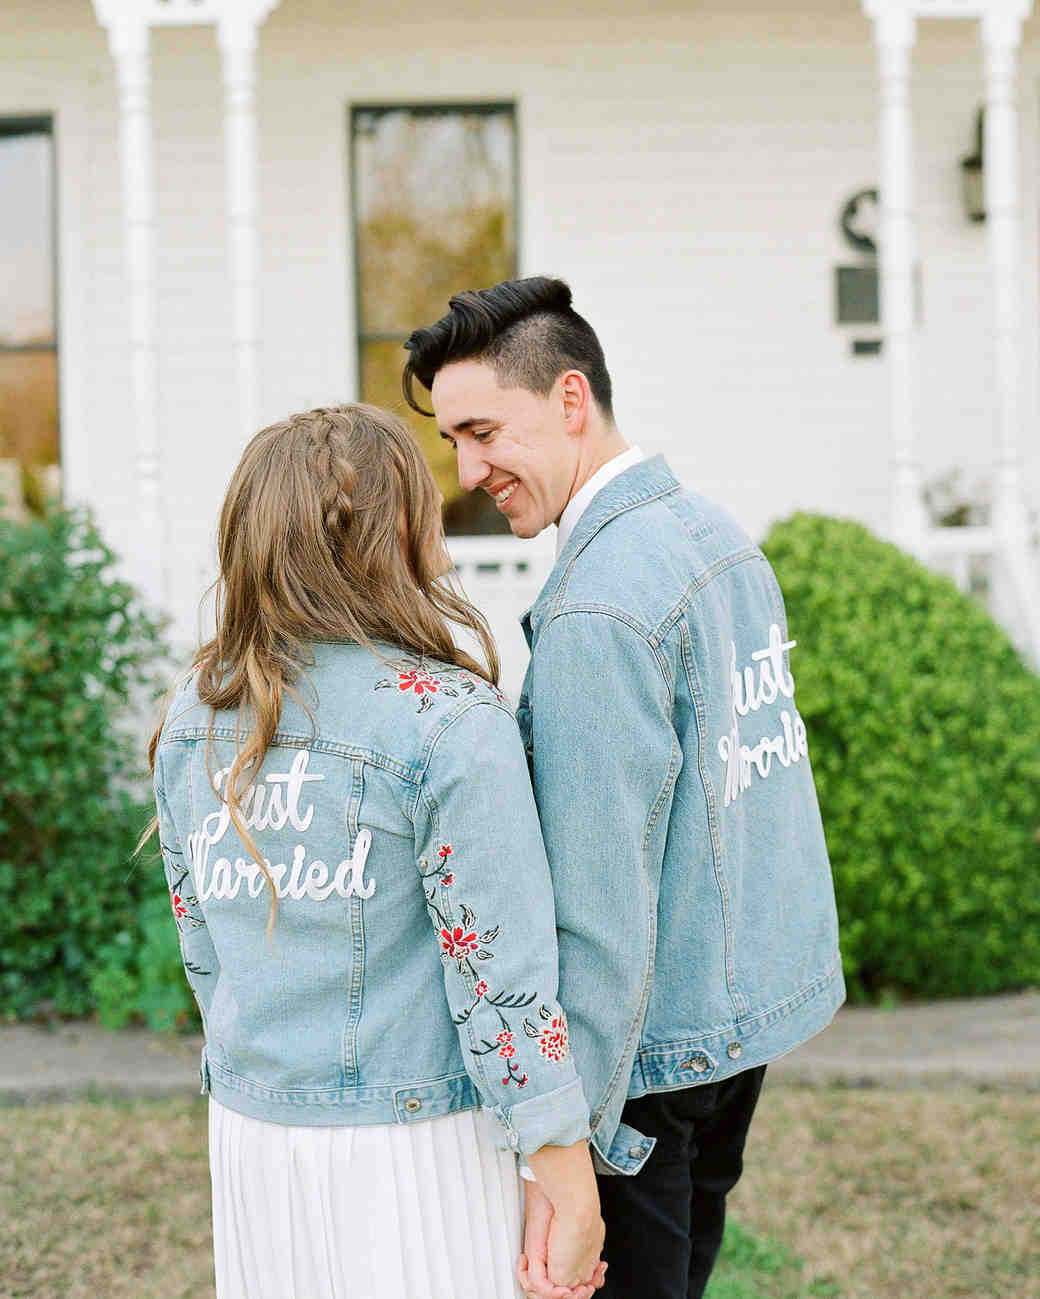 Just Married Iron On Patch - Daily Disco